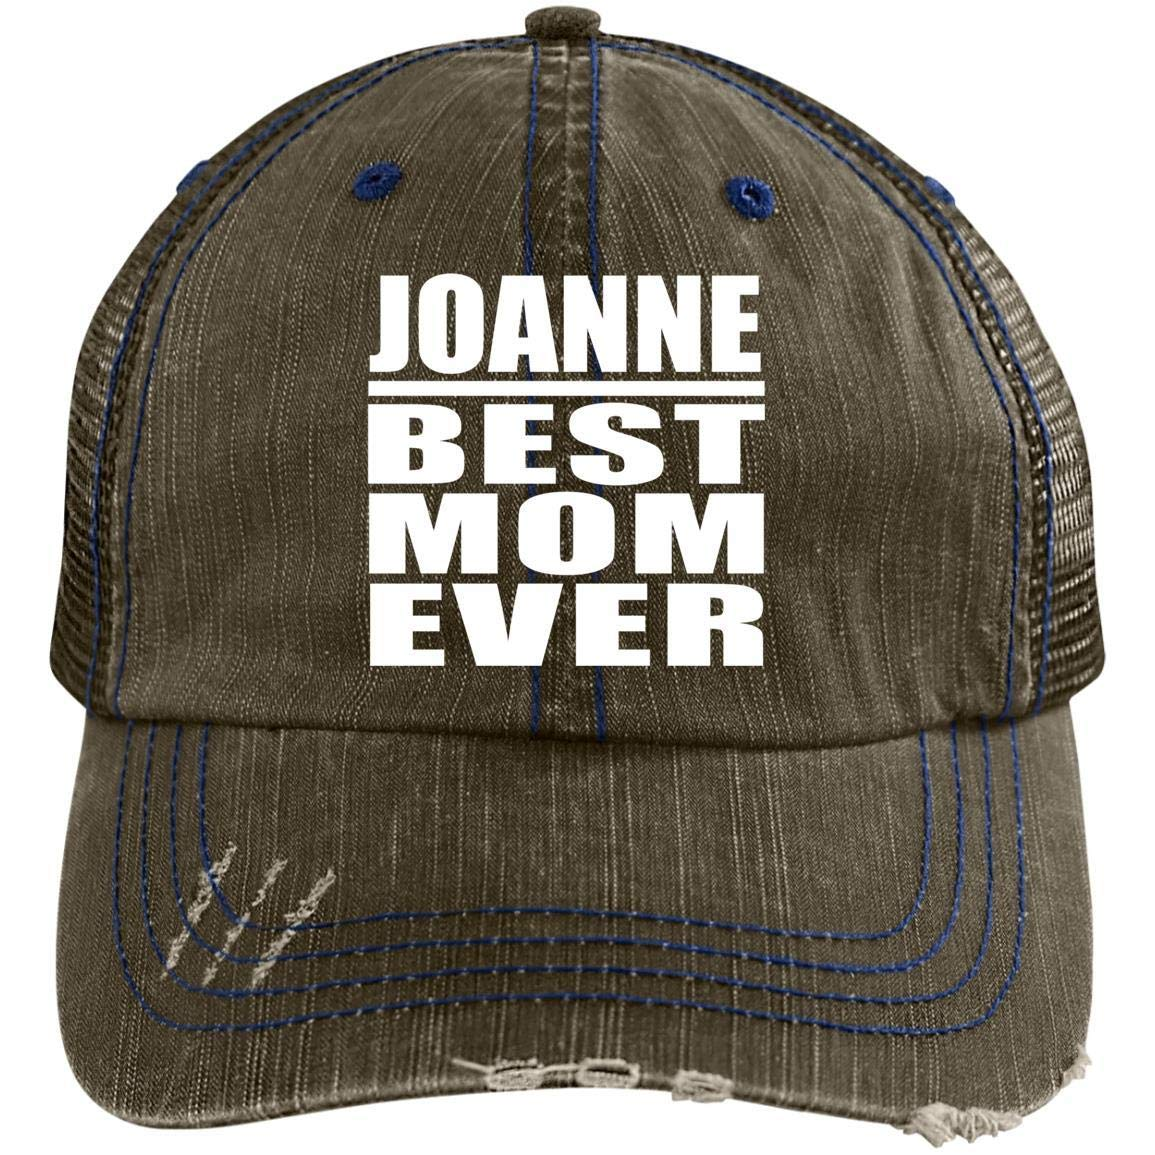 24a795dc4 Amazon.com: Joanne Best Mom Ever - Distressed Trucker Cap Black/Grey ...